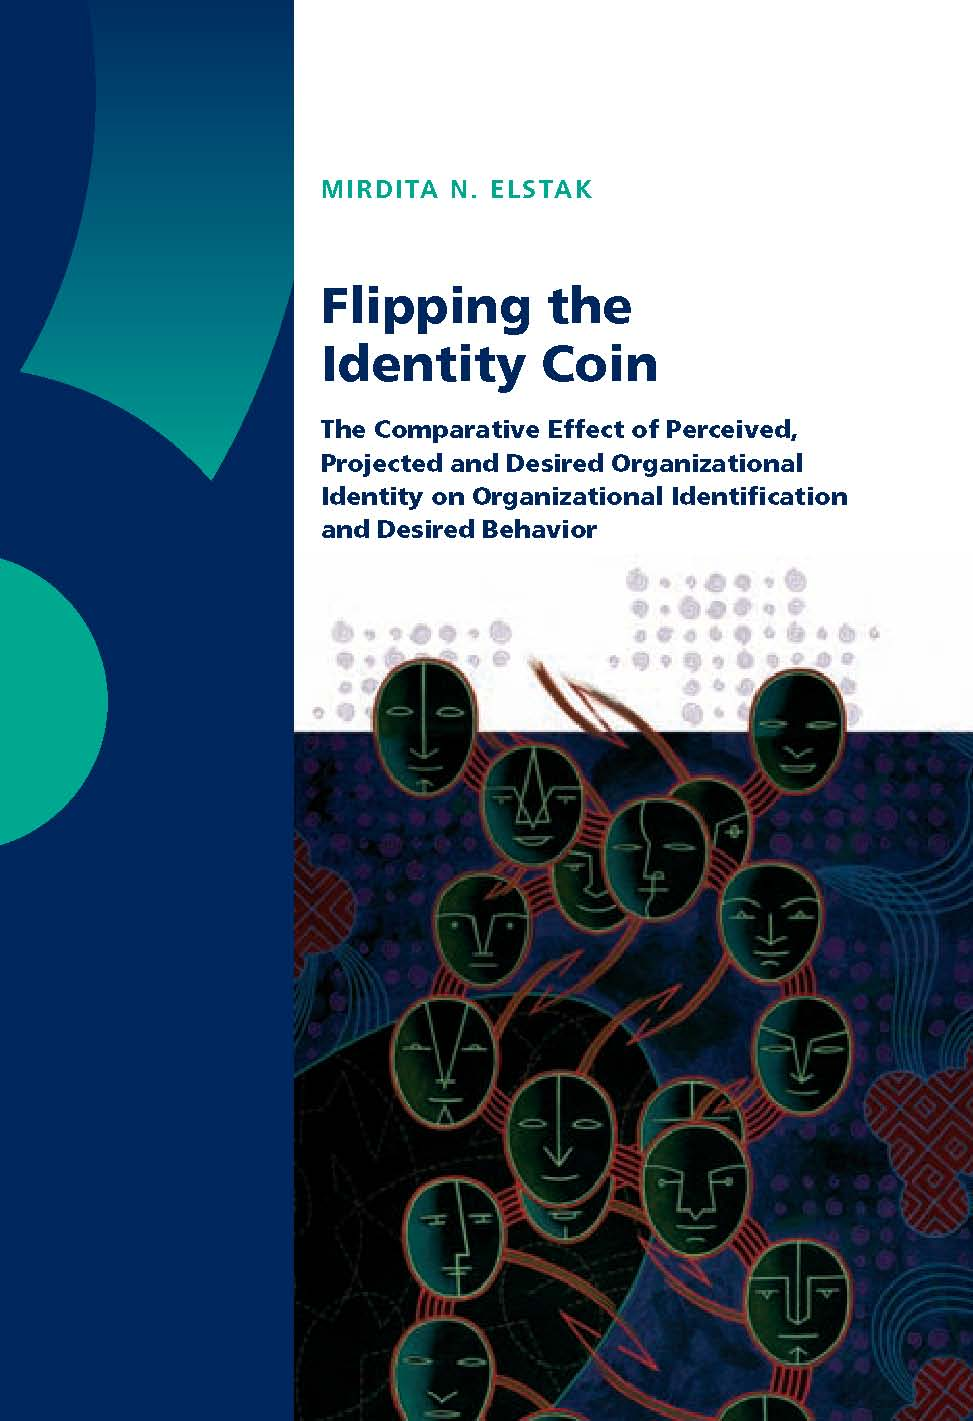 Flipping the Identity Coin: The Comparative Effect of Perceived, Projected and Desired Organizational Identity on Organizational Identification and Desired Behavior